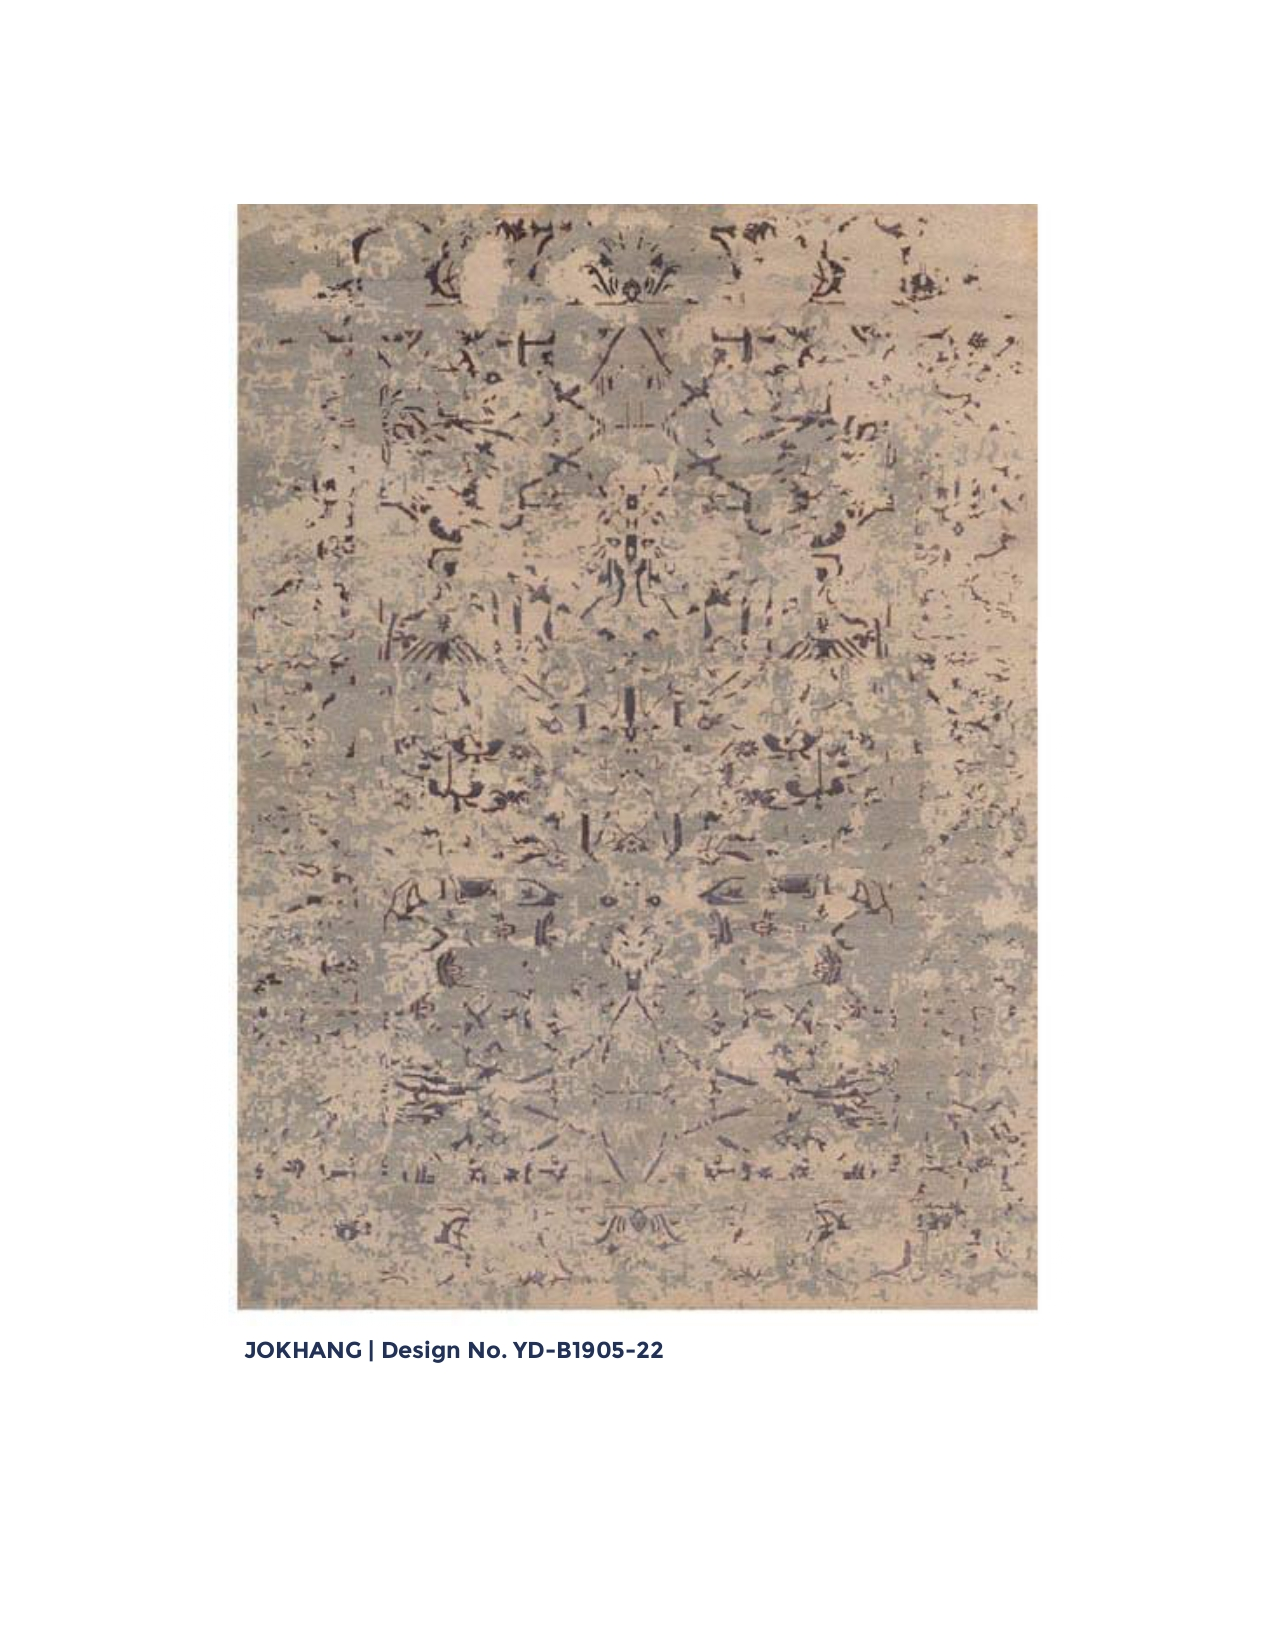 Hand_Knotted_CC_1905_27.jpg